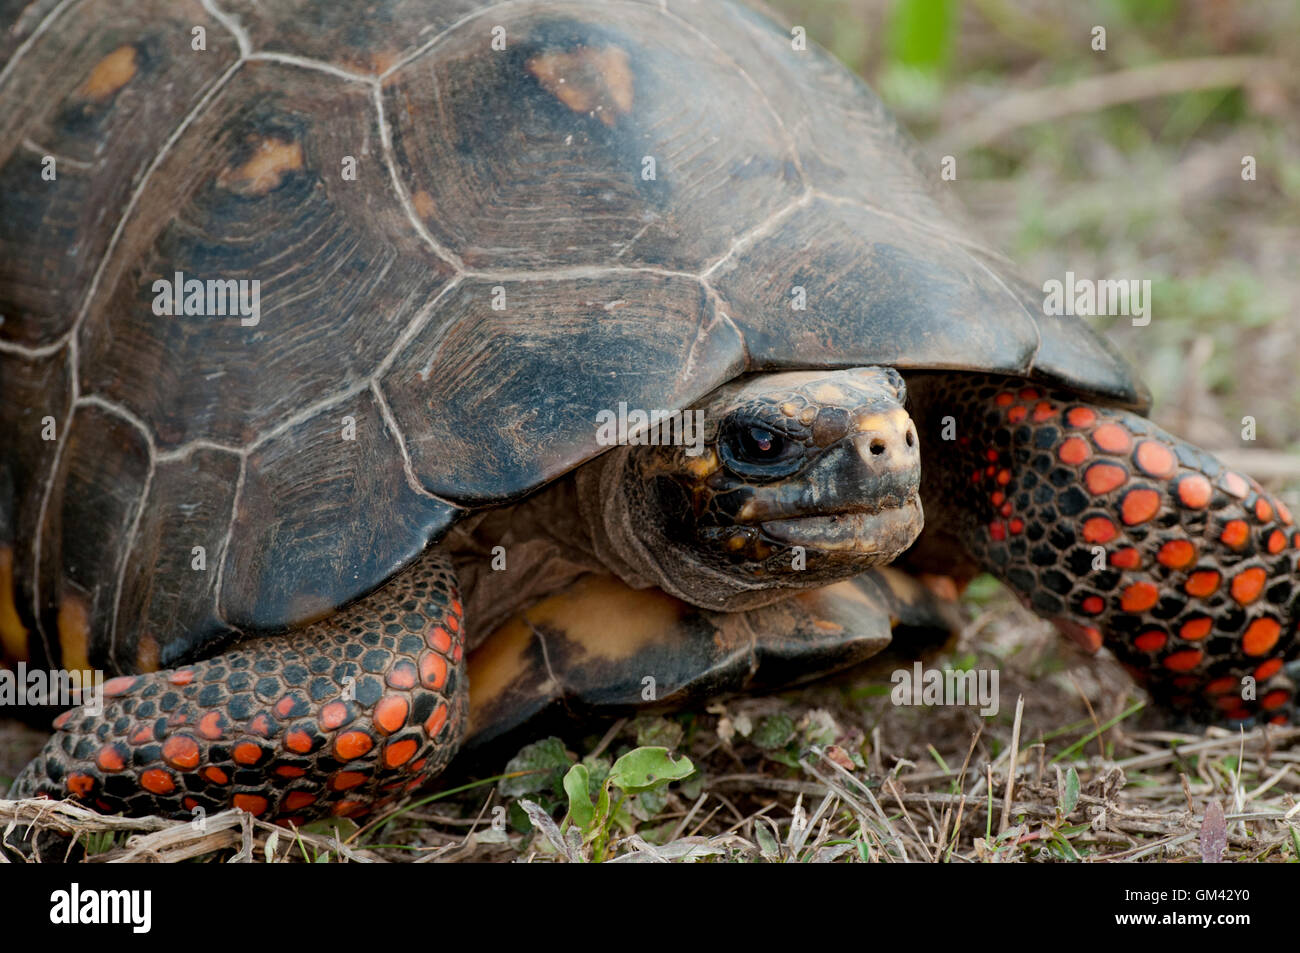 Red-legged tortoise (Chelonoidis carbonaria) in The Pantanal in Brazil - Stock Image